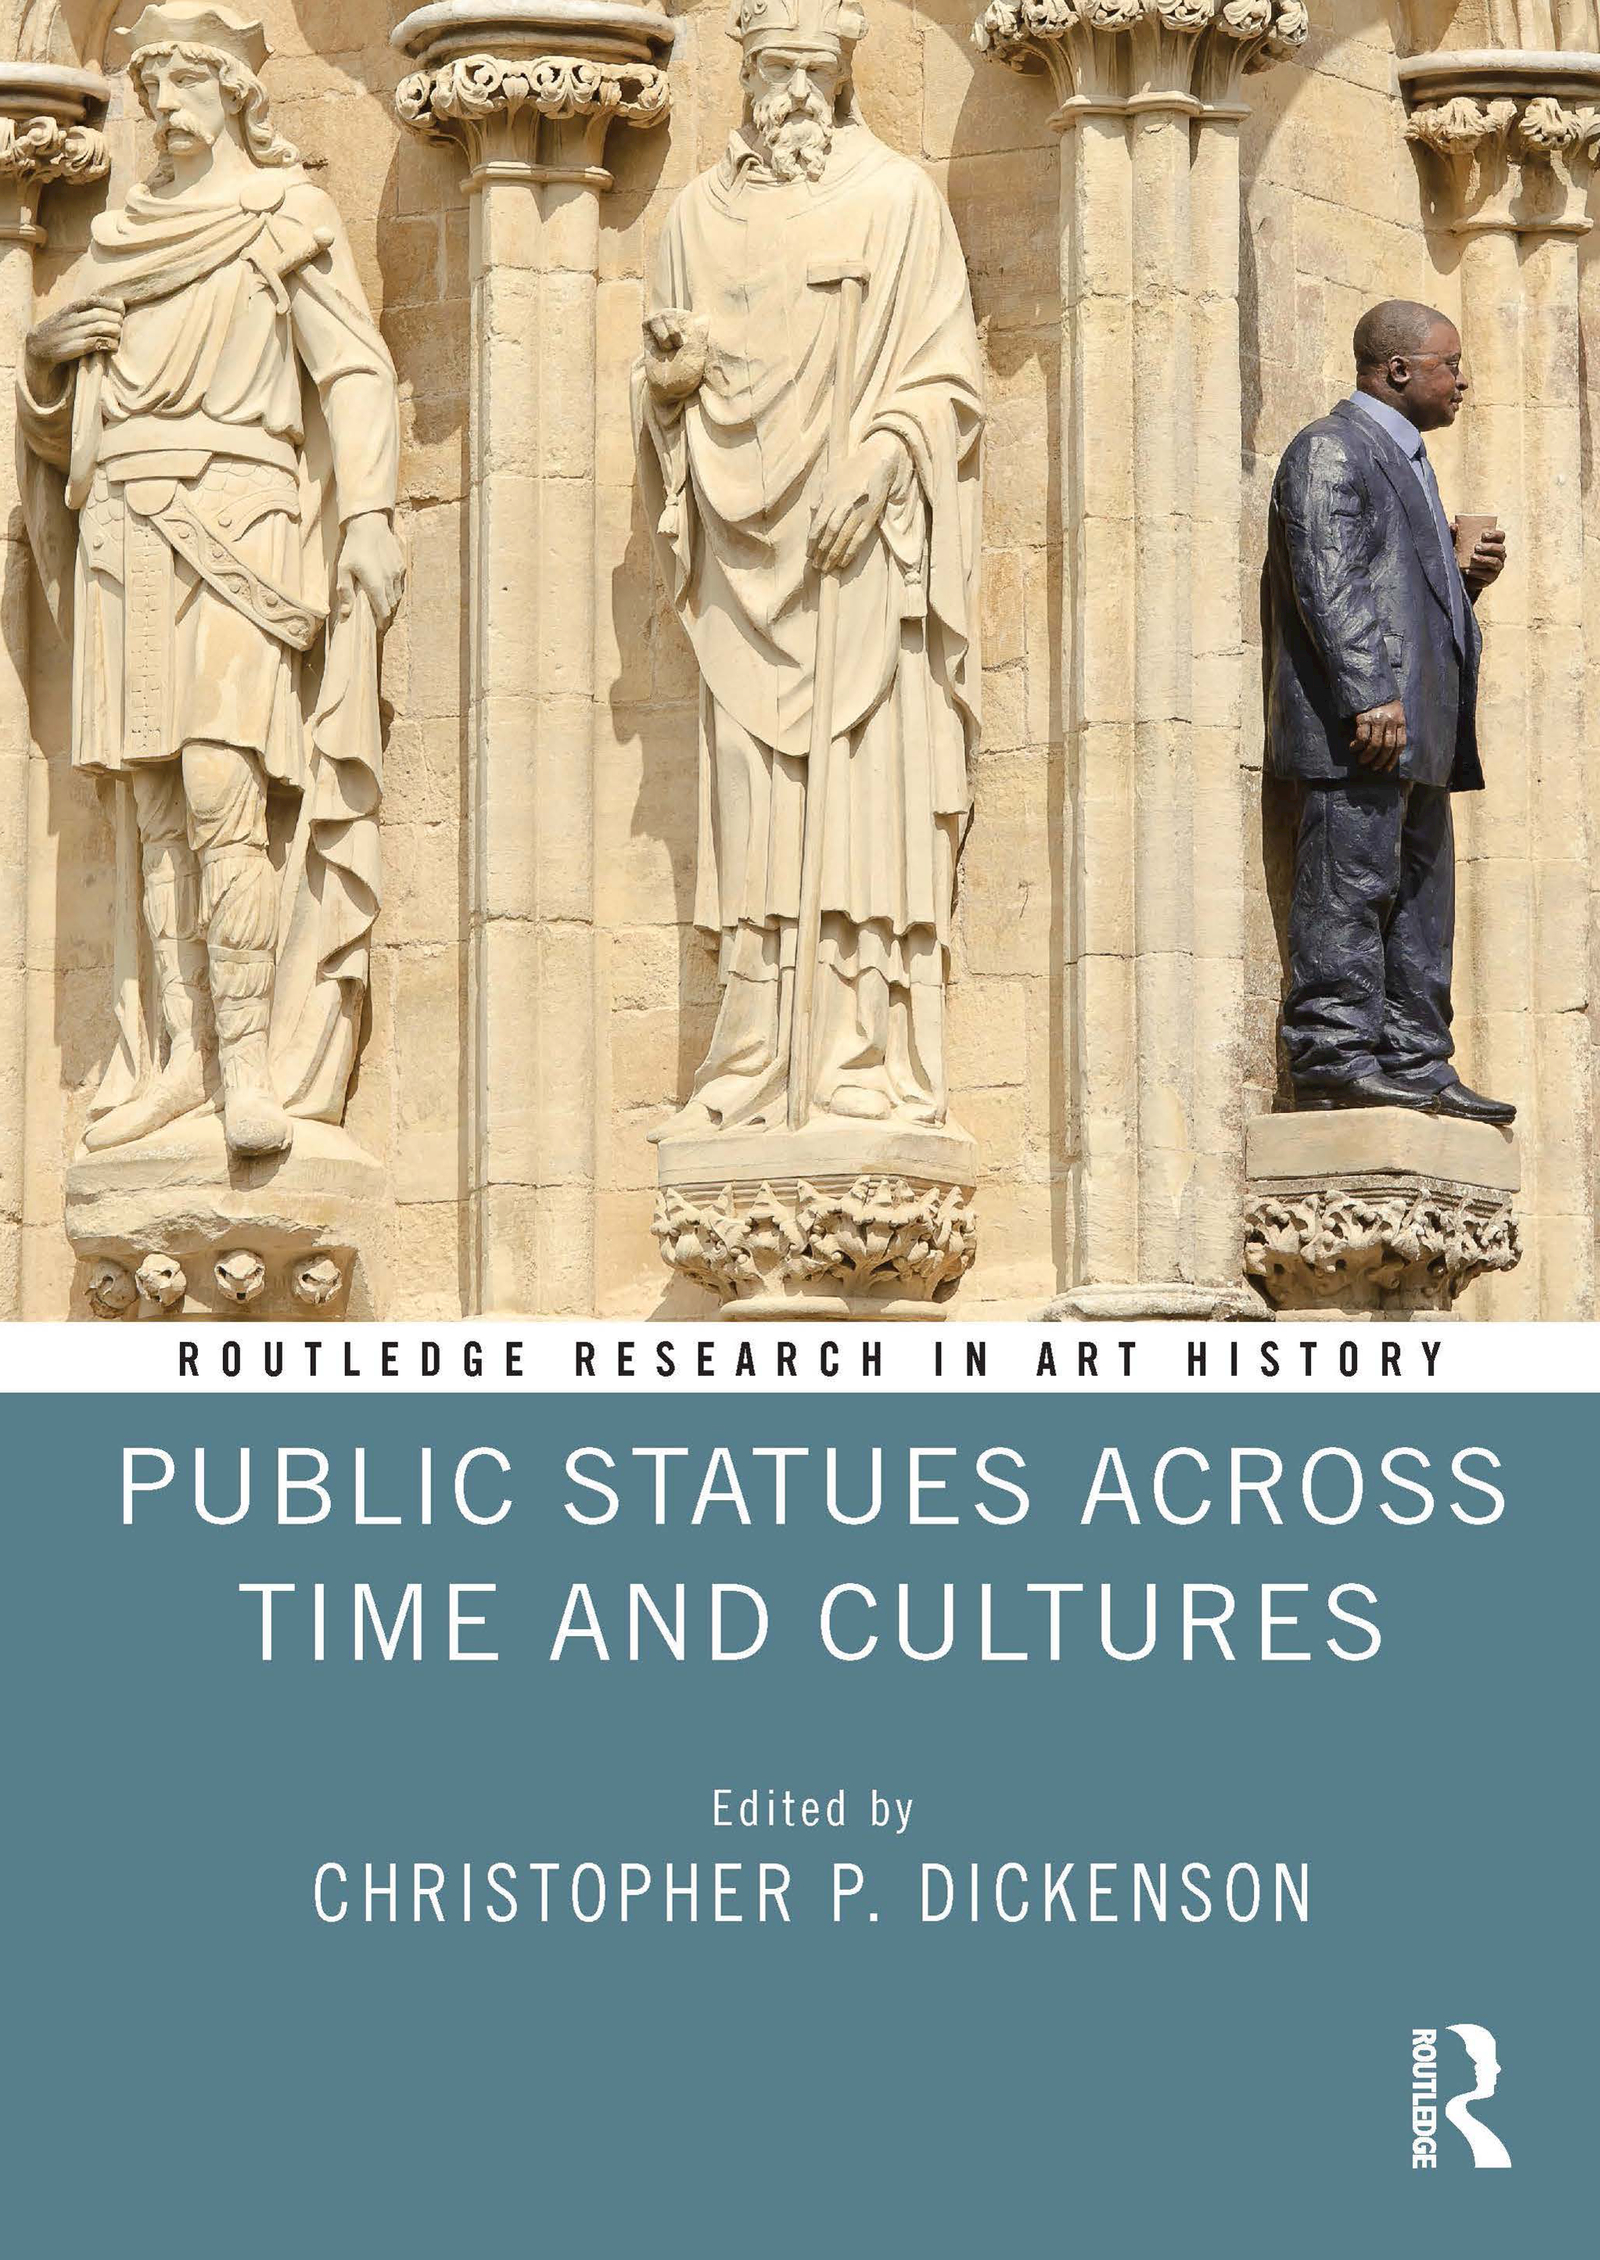 Public Statues Across Time and Cultures